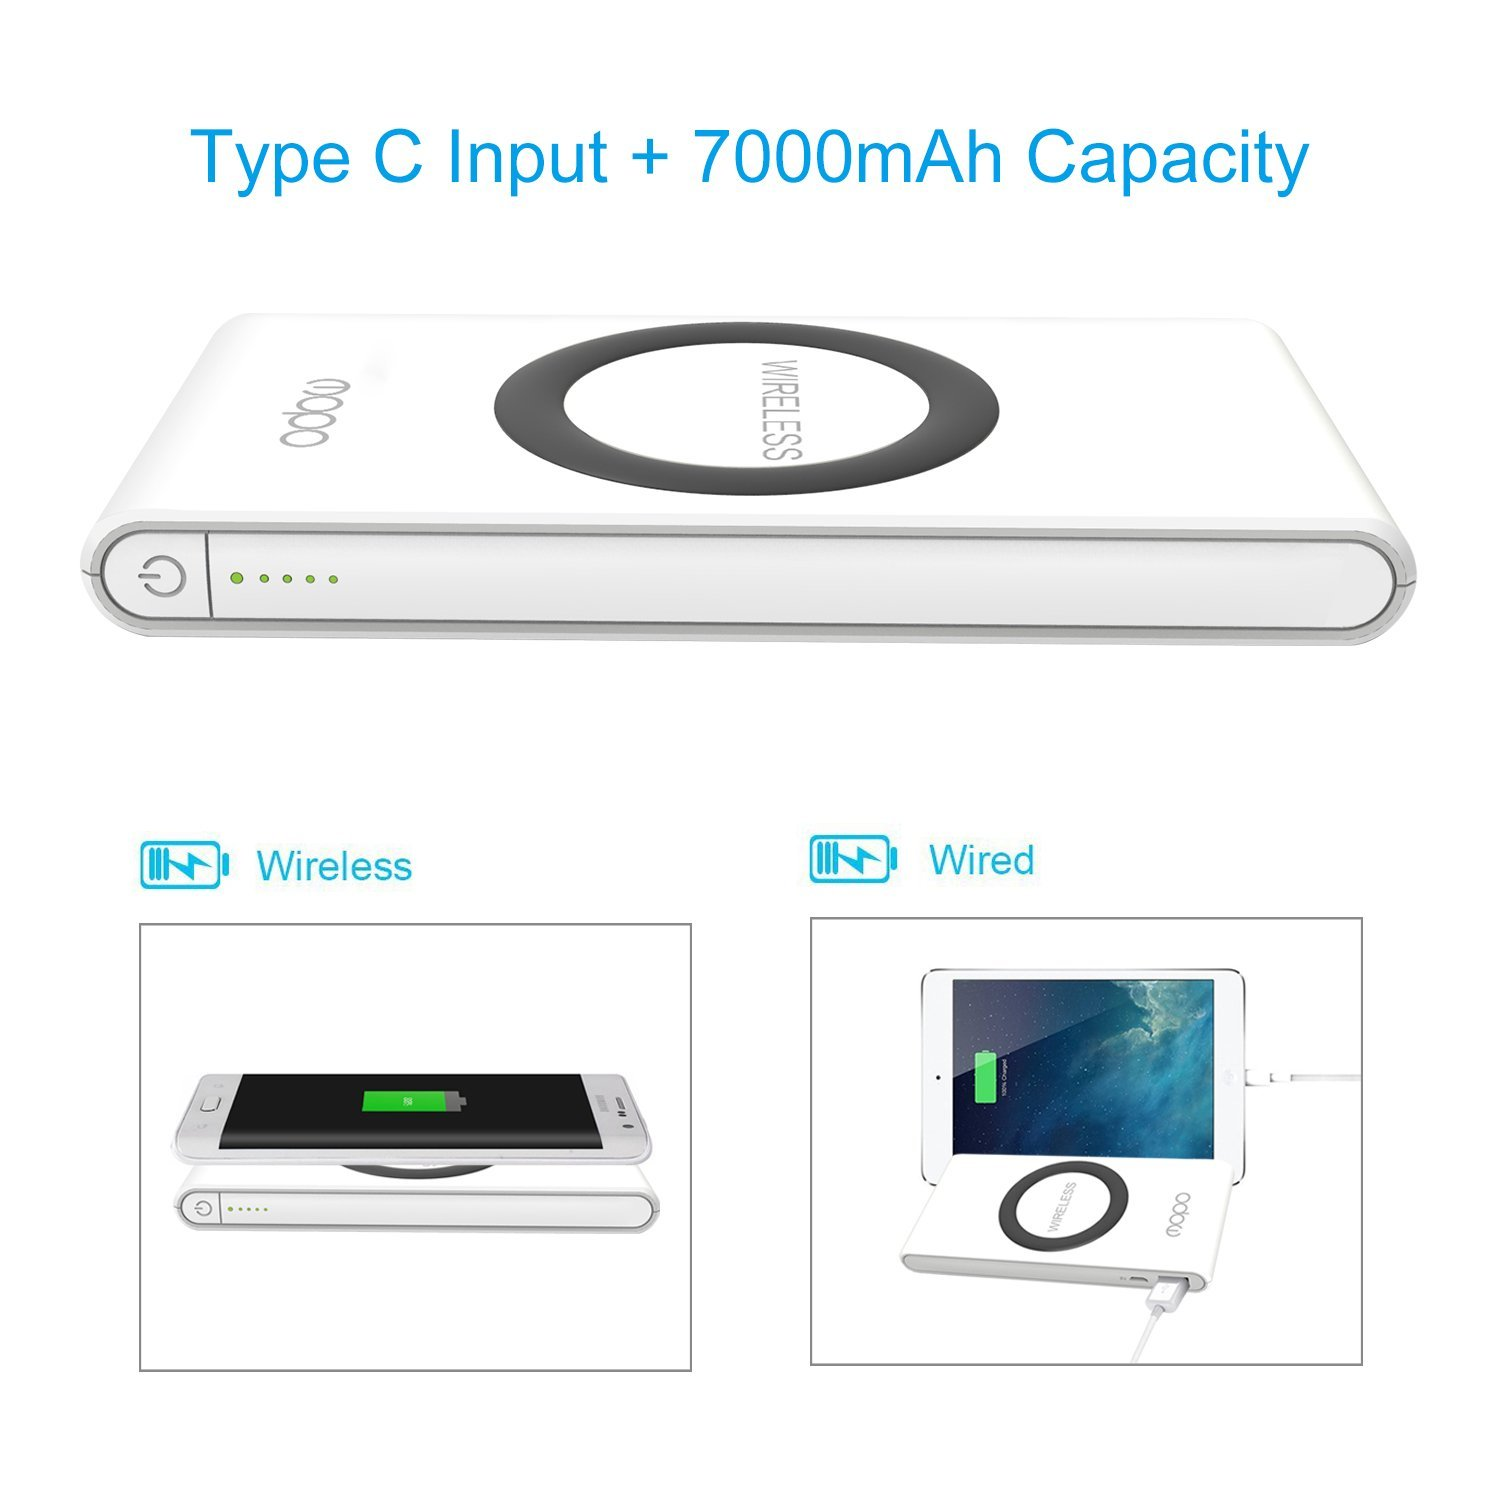 QI Wireless Charging Power Bank,MOPO 7000mAh Type C Portable Charger Dual Mode Charging with Type C/USB C input USB A Output For Samsung, iPhone And More (White-7000mAh)